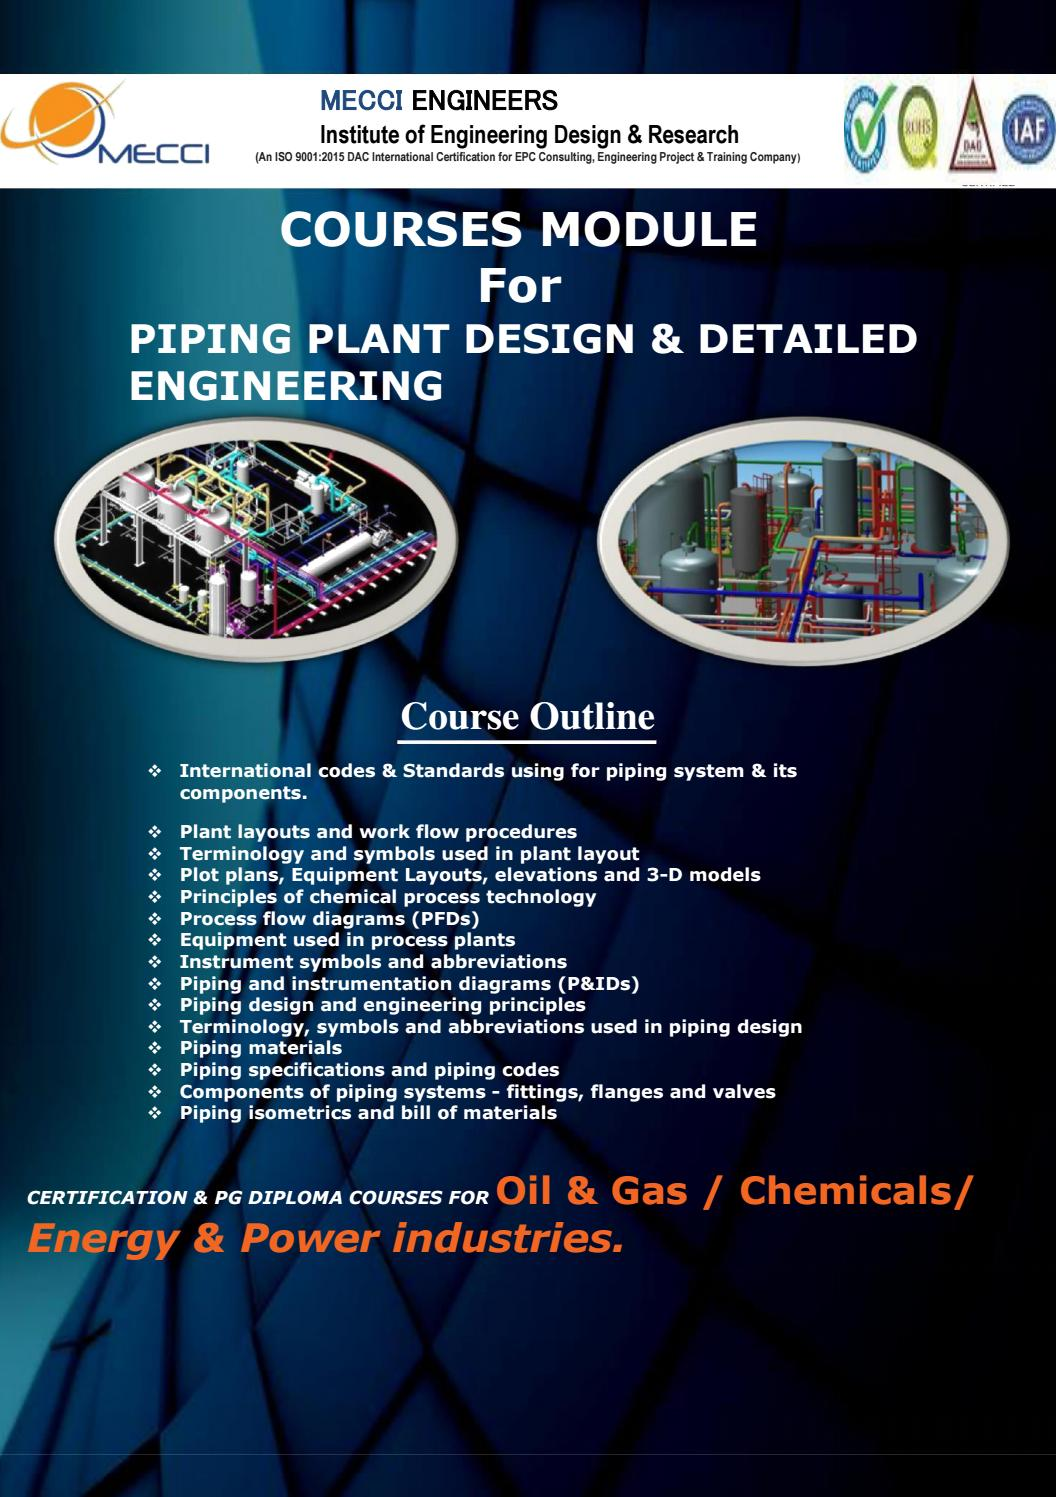 Piping Design Engineering Training By Mecci Engineers Issuu